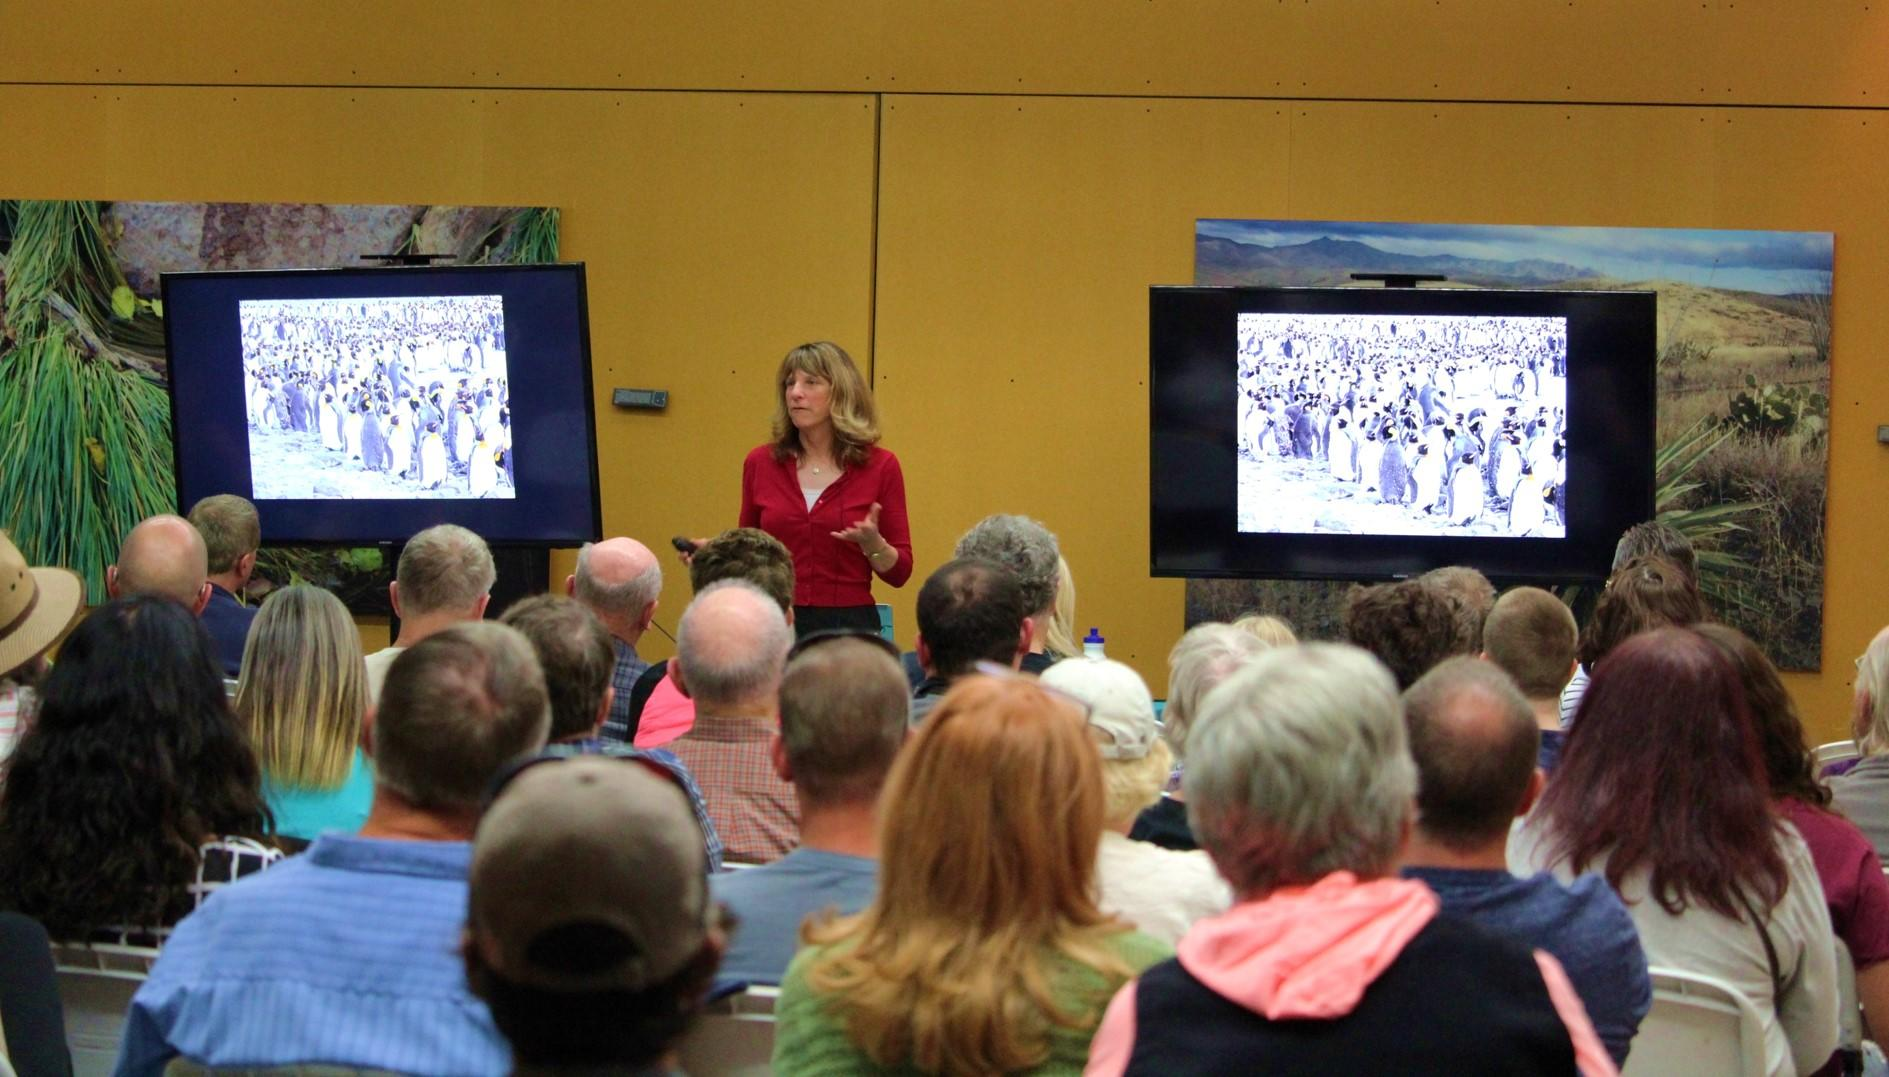 A crowd of people watch Cindy Marple talk about penguins with a picture of penguins on two TV screens.